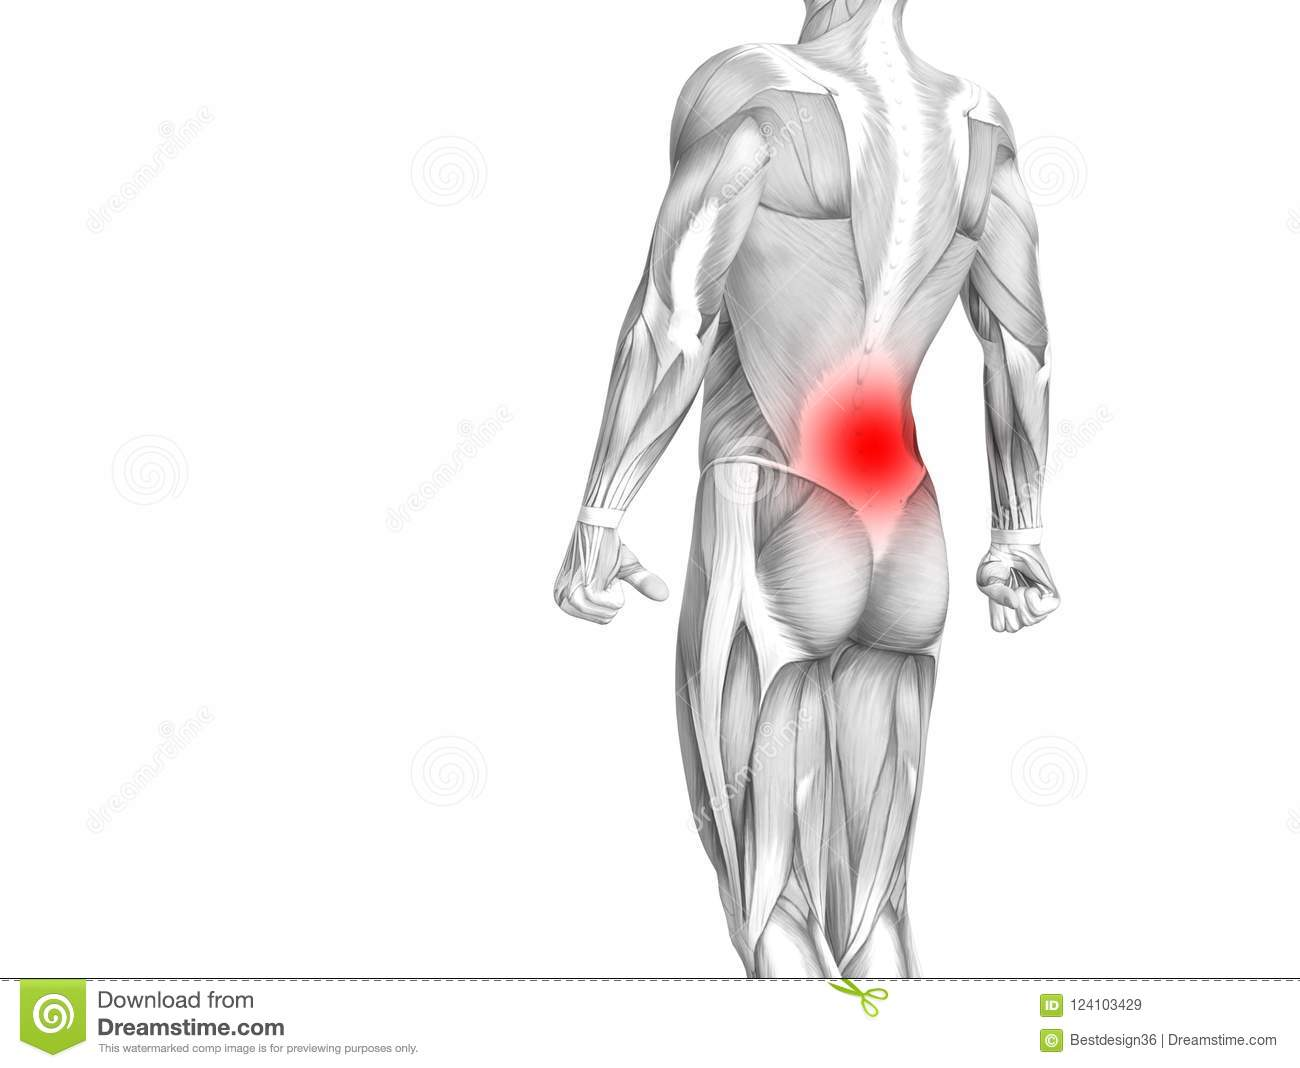 Back Human Anatomy With Red Hot Spot Inflammation Stock Illustration